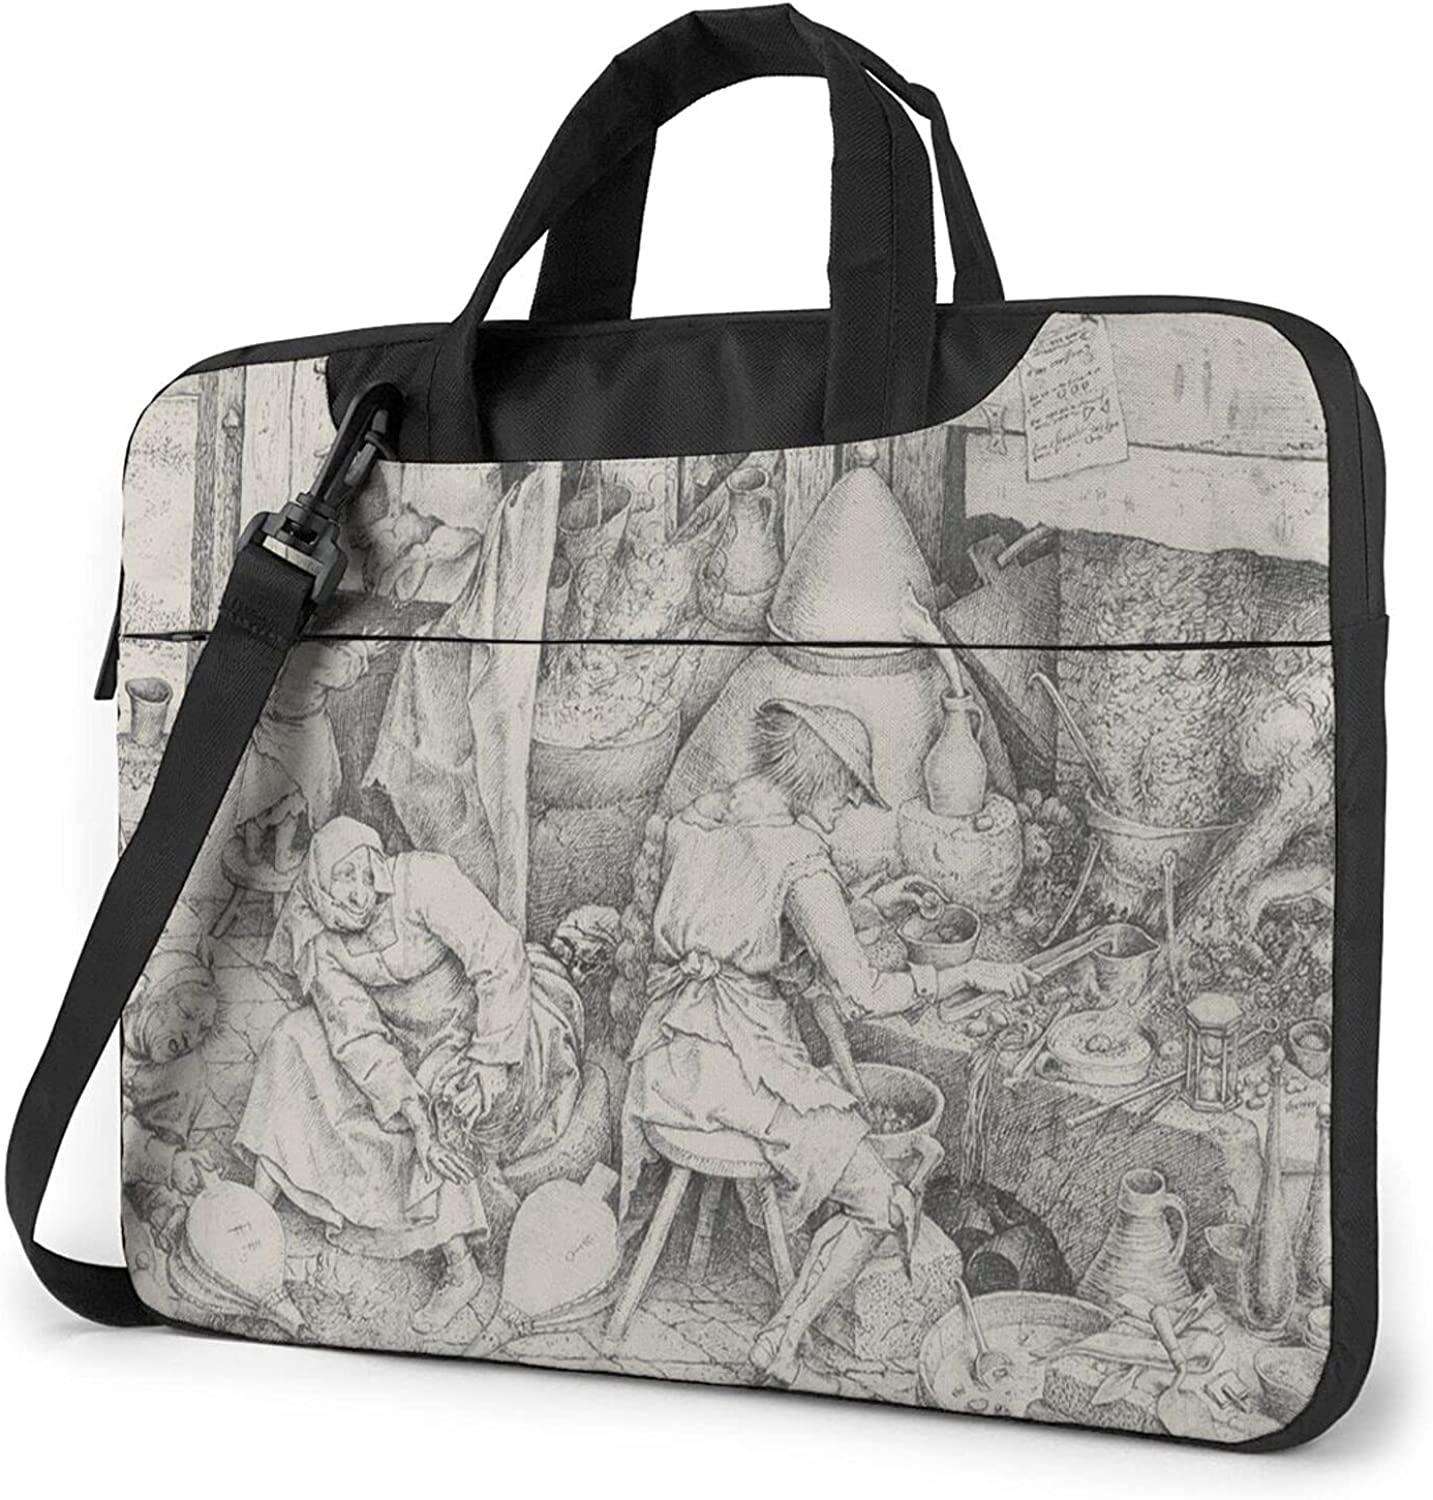 New products world's highest quality popular Laptop Sleeve Case Computer Mesa Mall Isles Foxes Fleet Bag